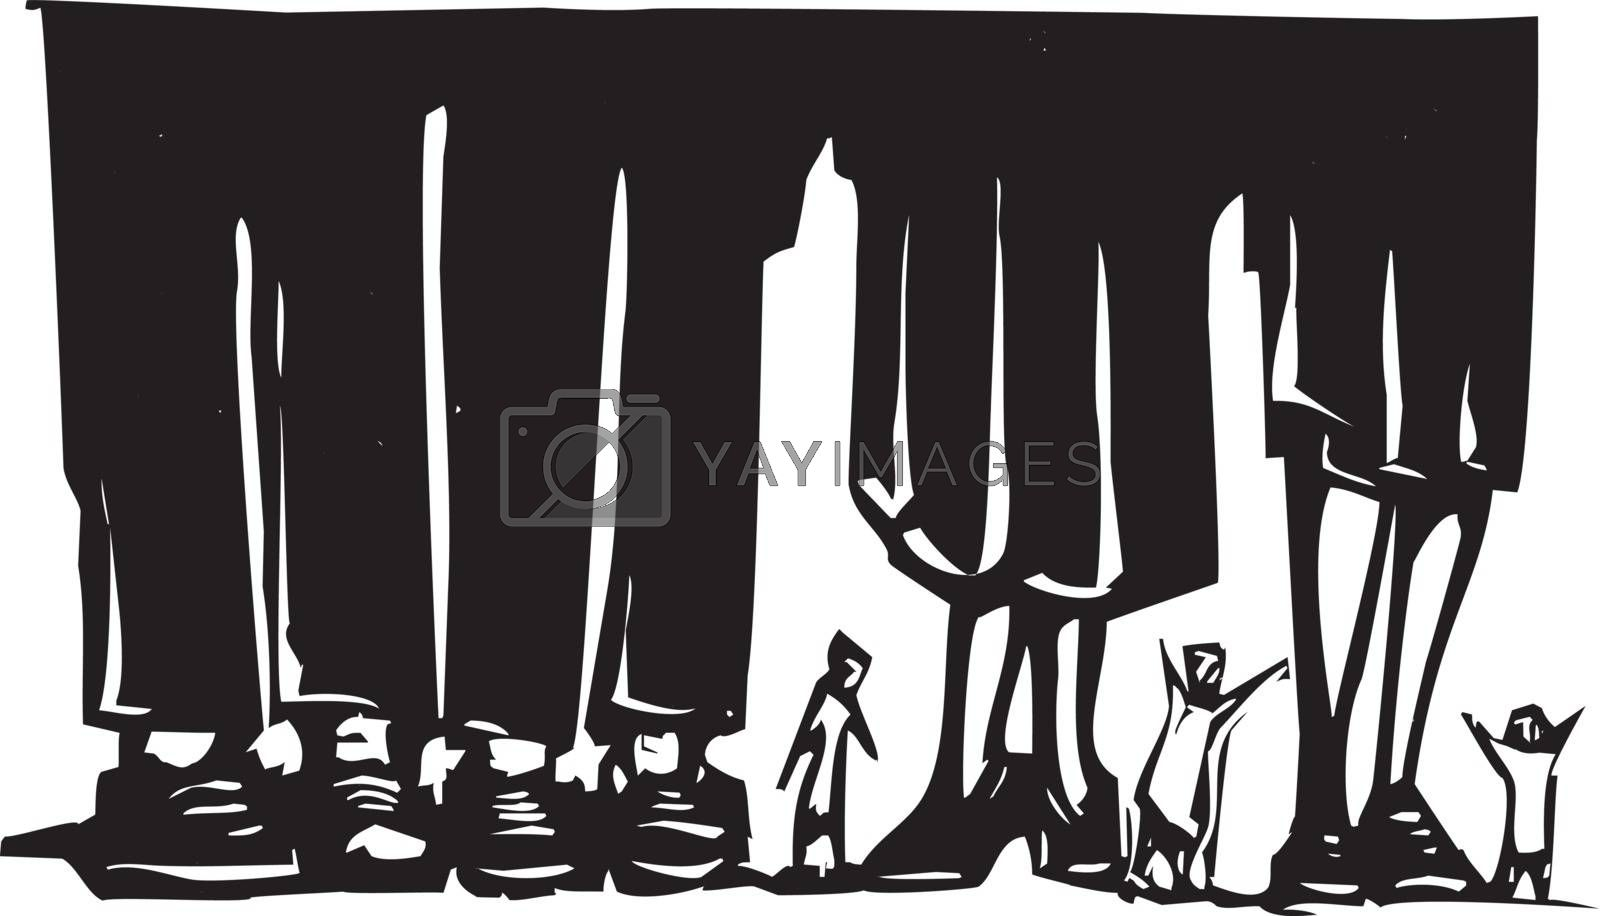 Woodcut style expressionist image of small people wandering among giant legs.